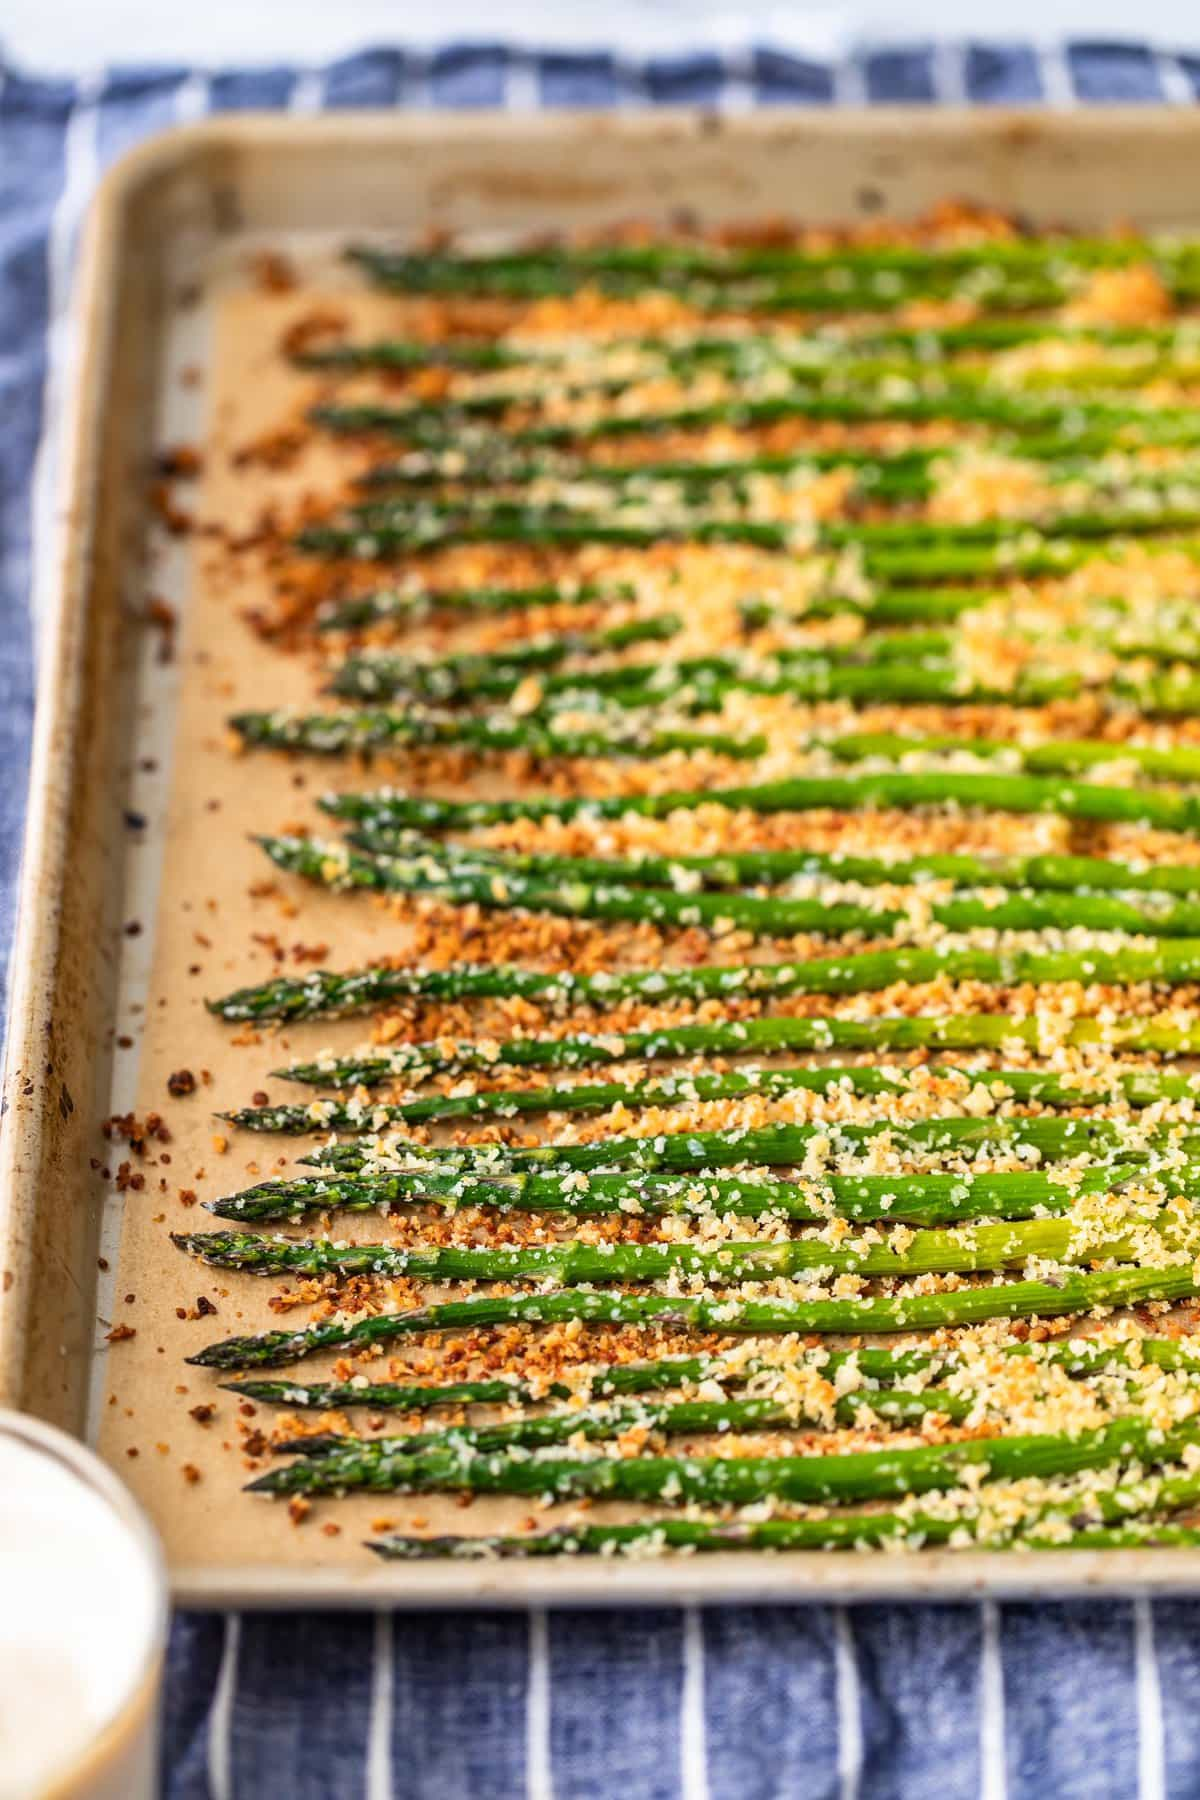 asparagus lined up on a baking tray